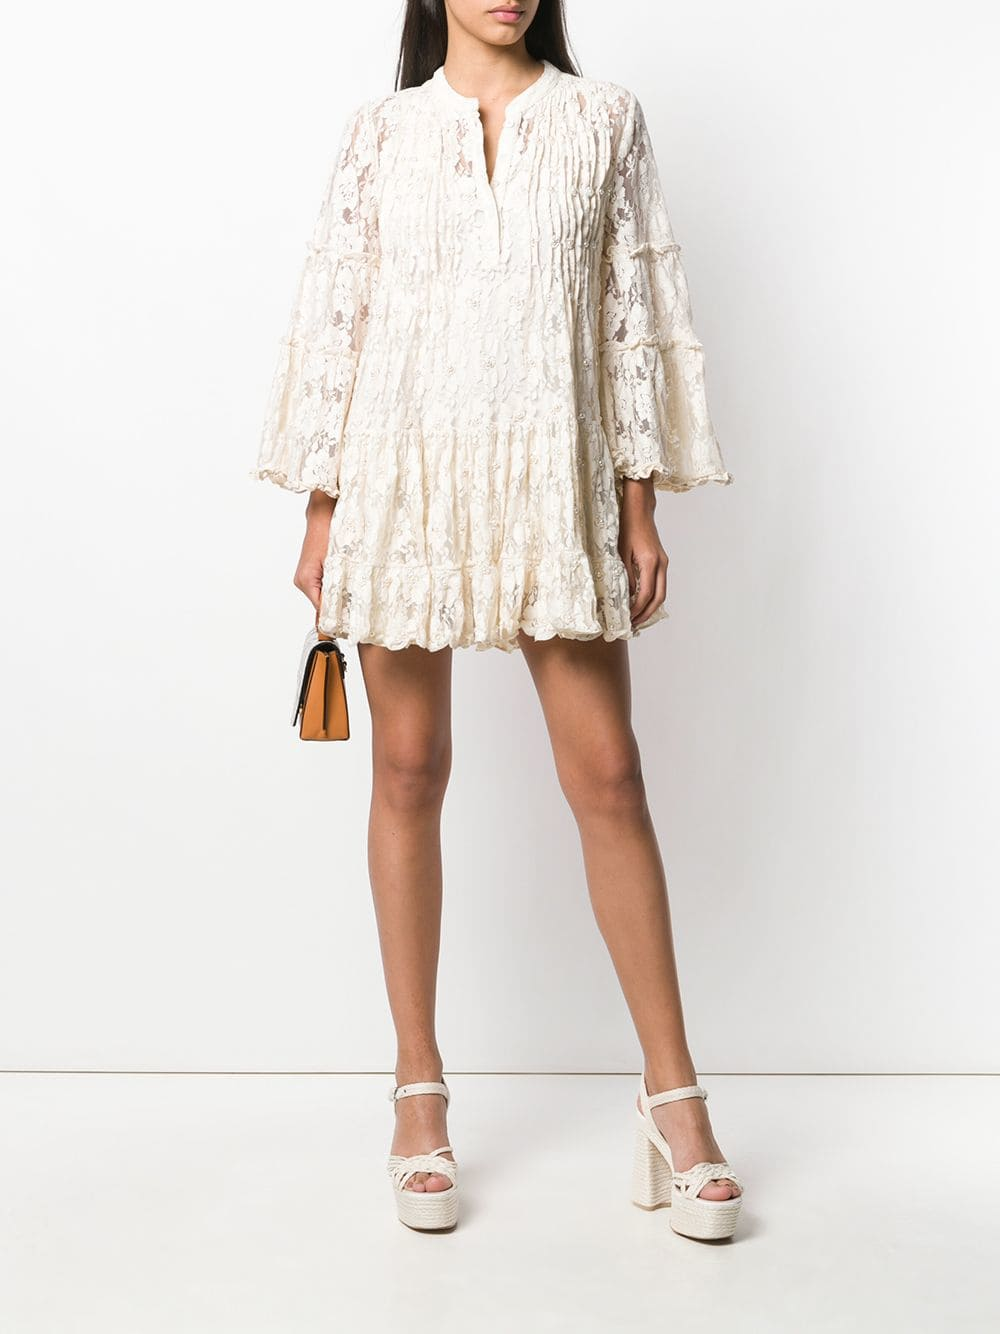 ALEXIS Beaded Lace Ivory Dress